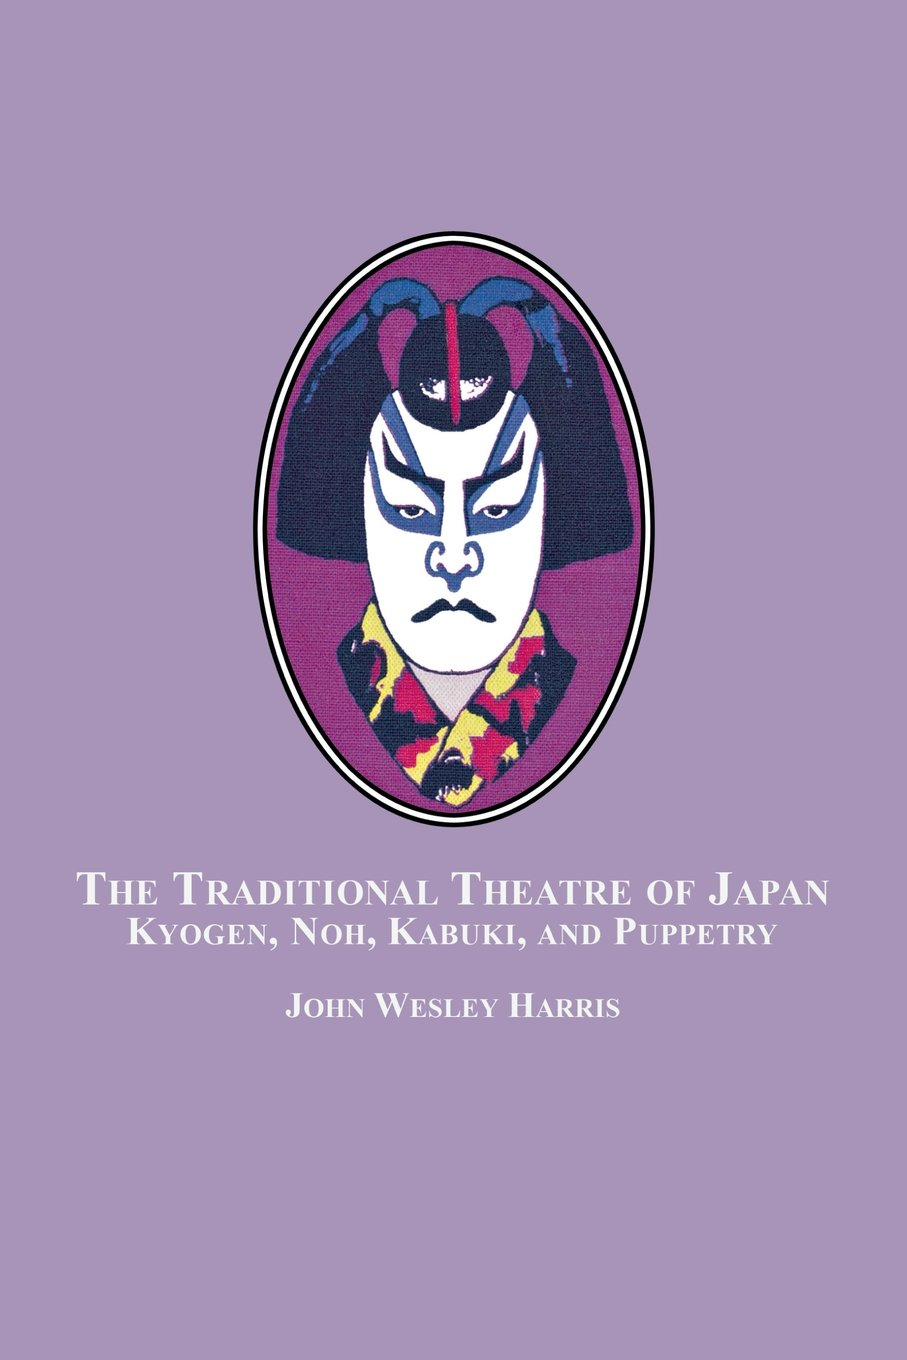 The Traditional Theatre of Japan: Kyogen, Noh, Kabuki and Puppetry